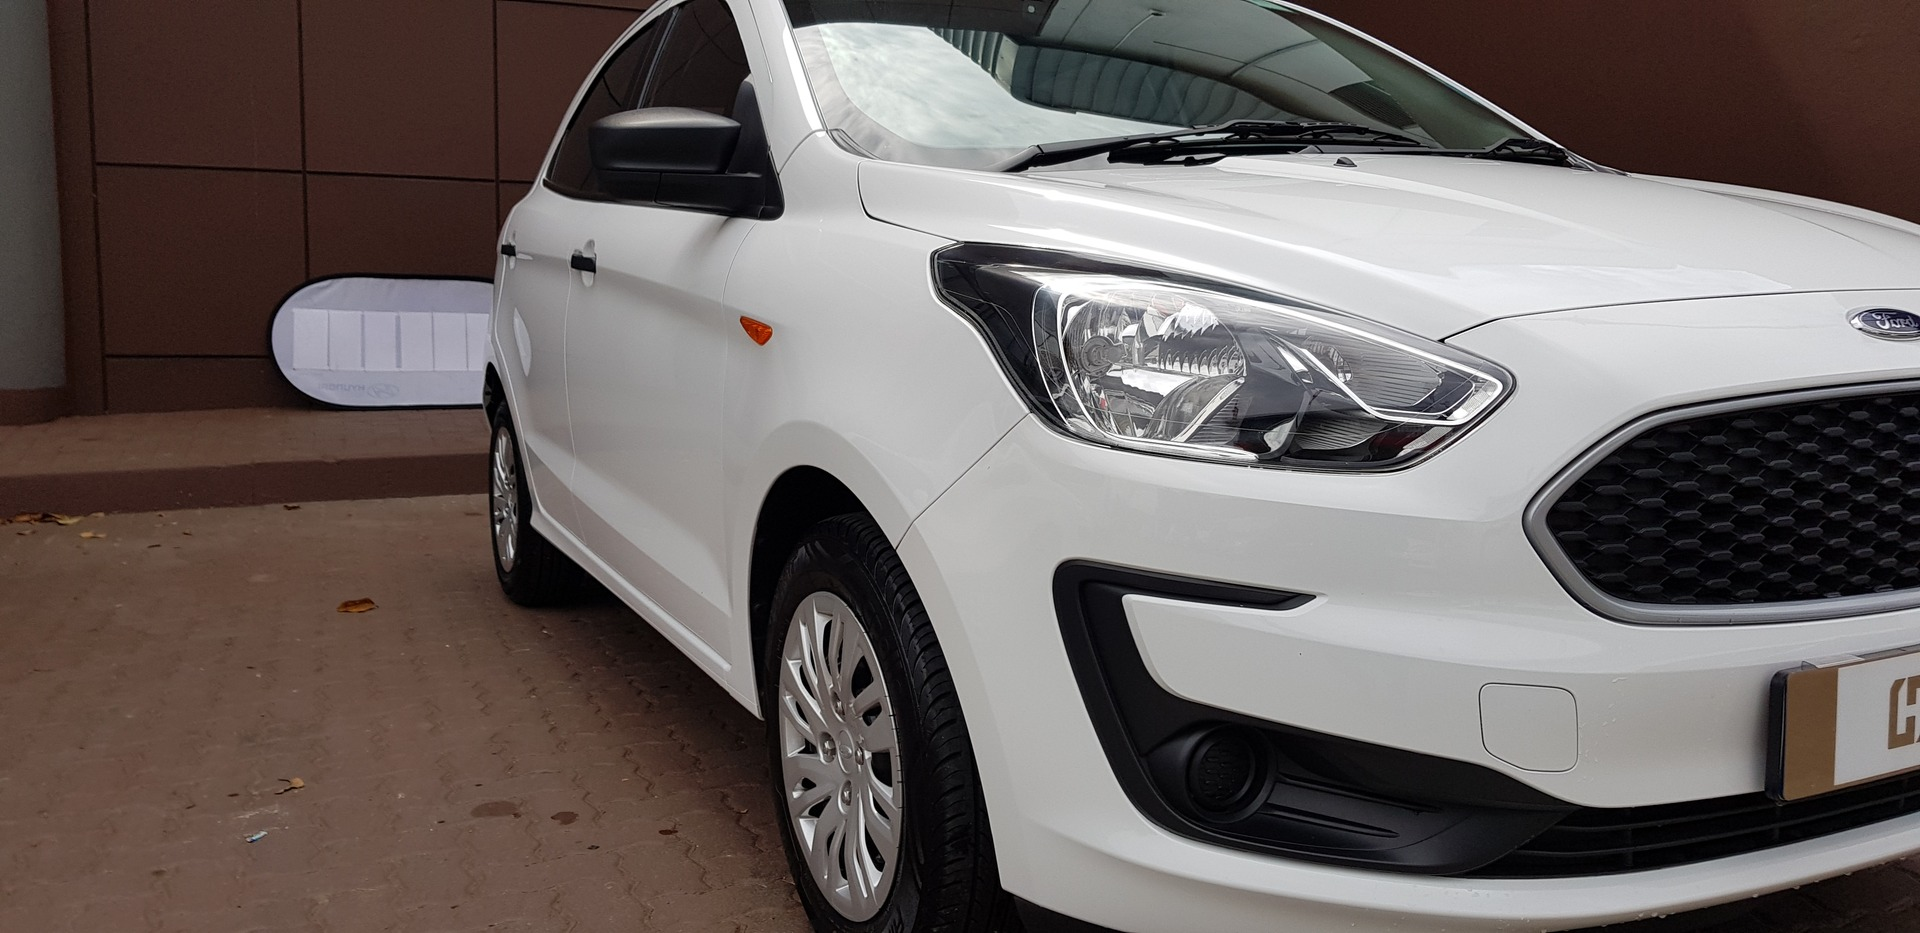 FORD 1.5Ti VCT AMBIENTE (5DR) Johannesburg 3332460